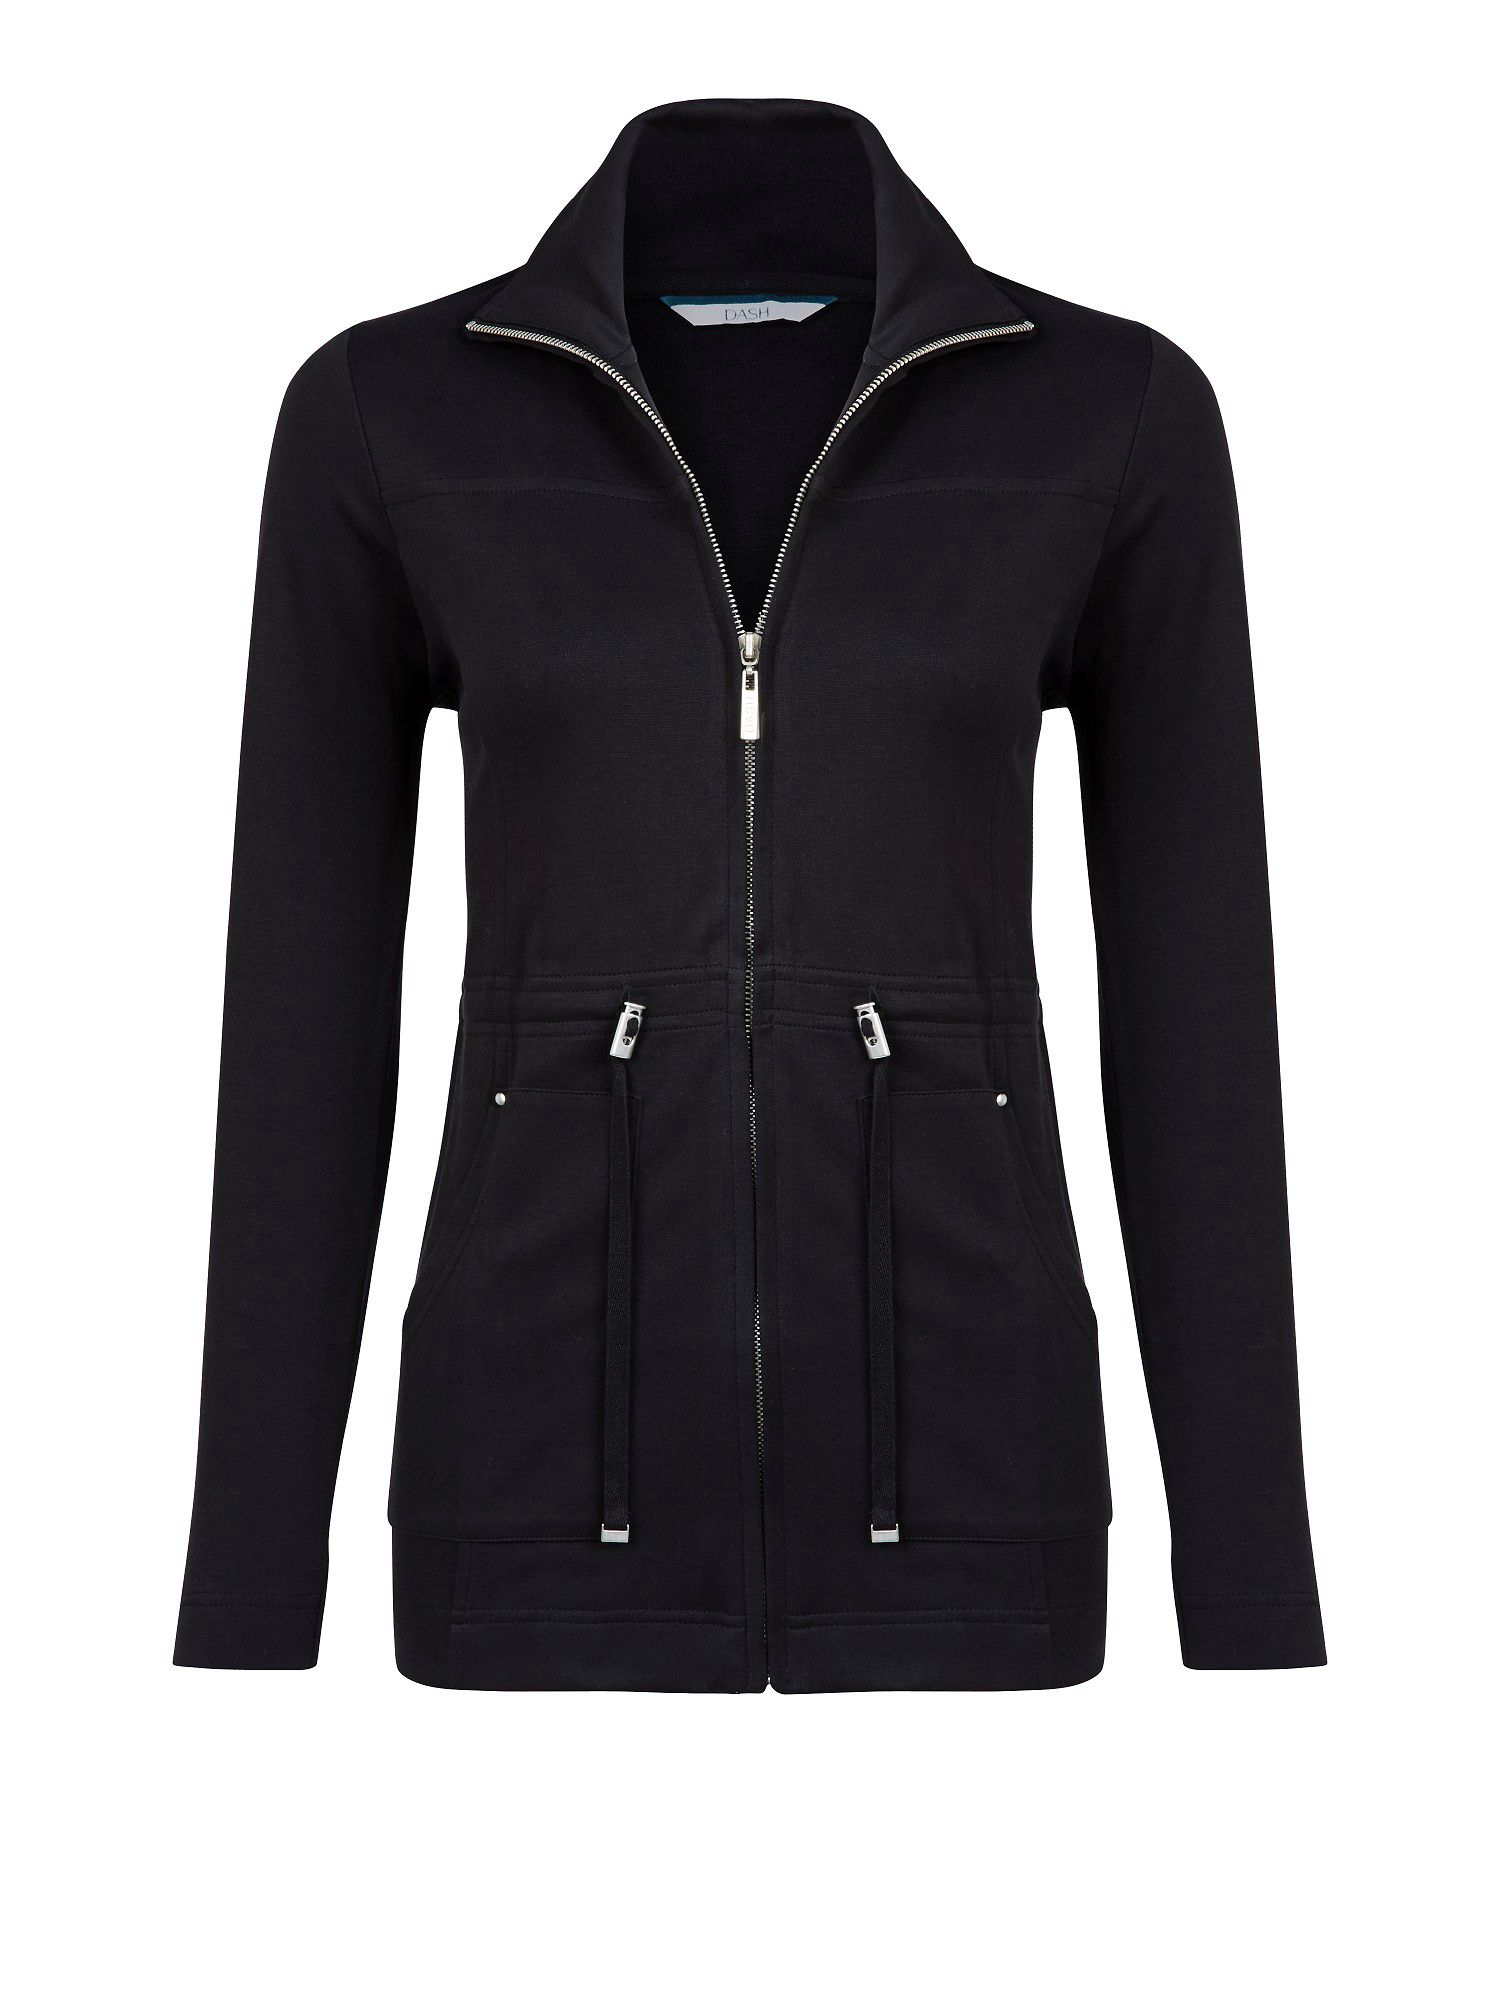 Black interlock jacket